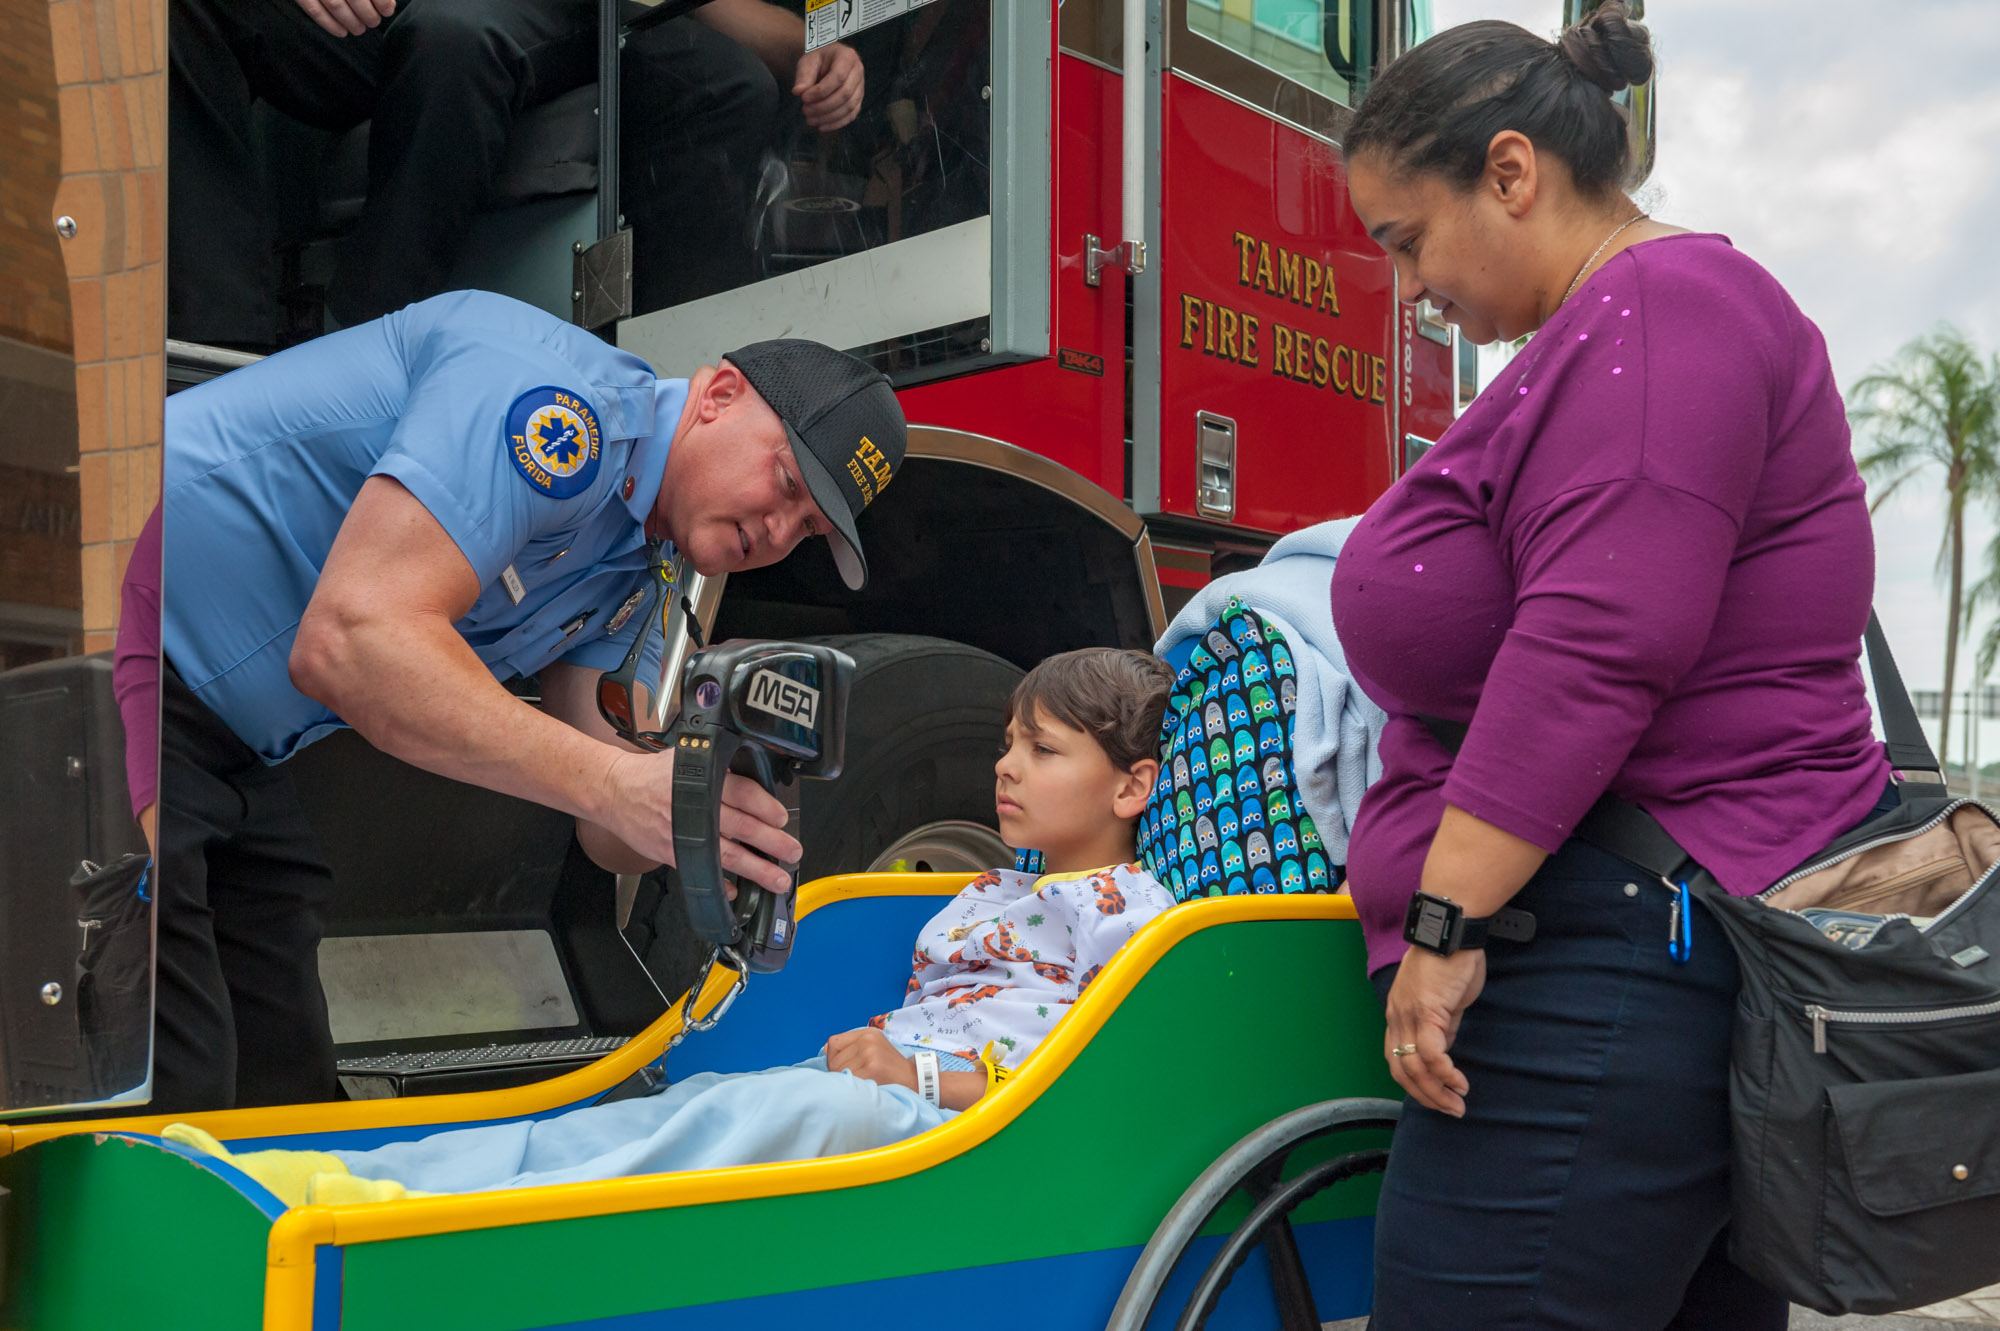 Firefighters from Tampa Fire Rescue delivering toys to pediatric patients